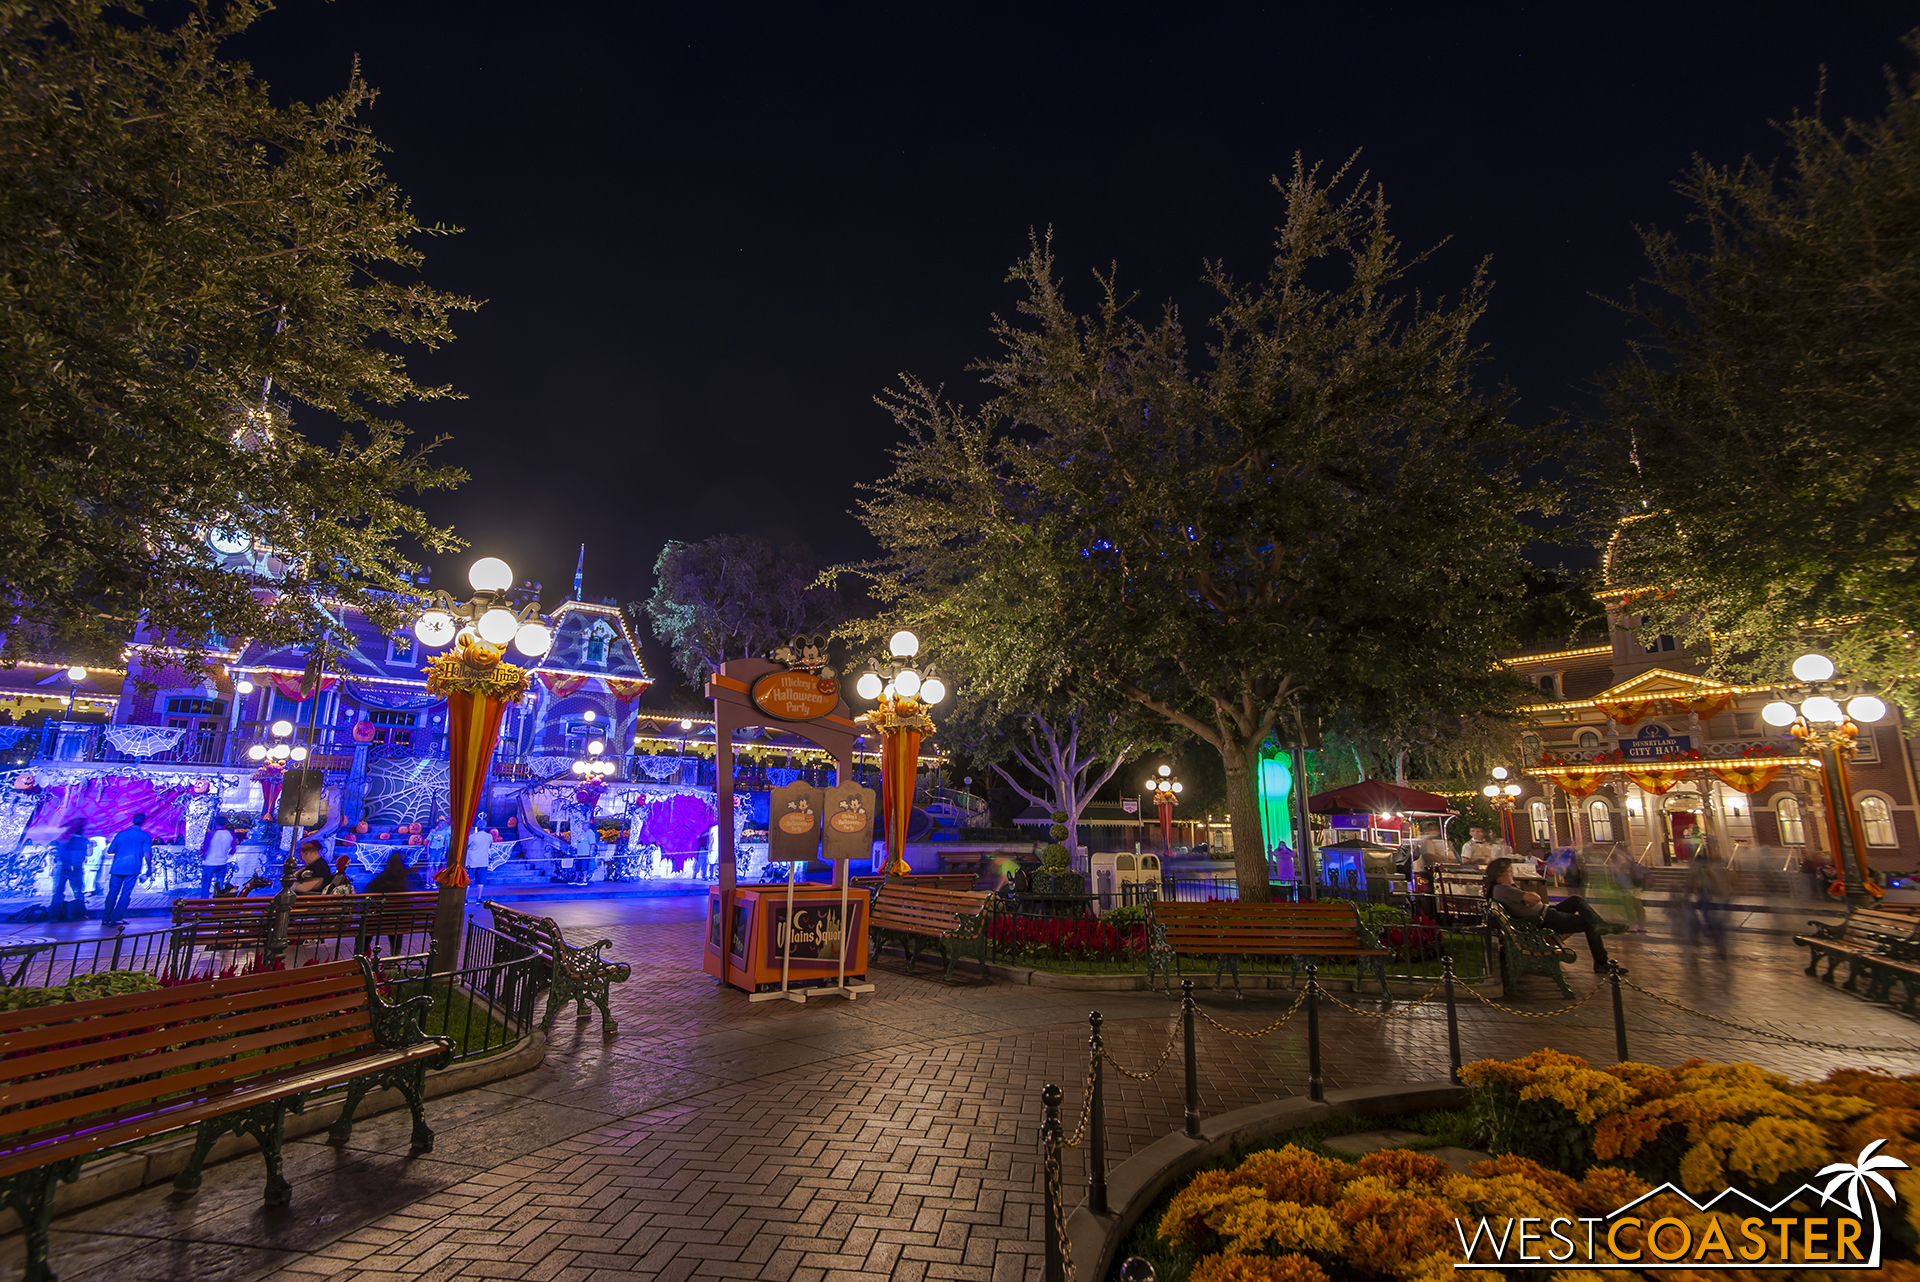 The Disneyland Railroad station also receives decorations and a dramatic lighting package.